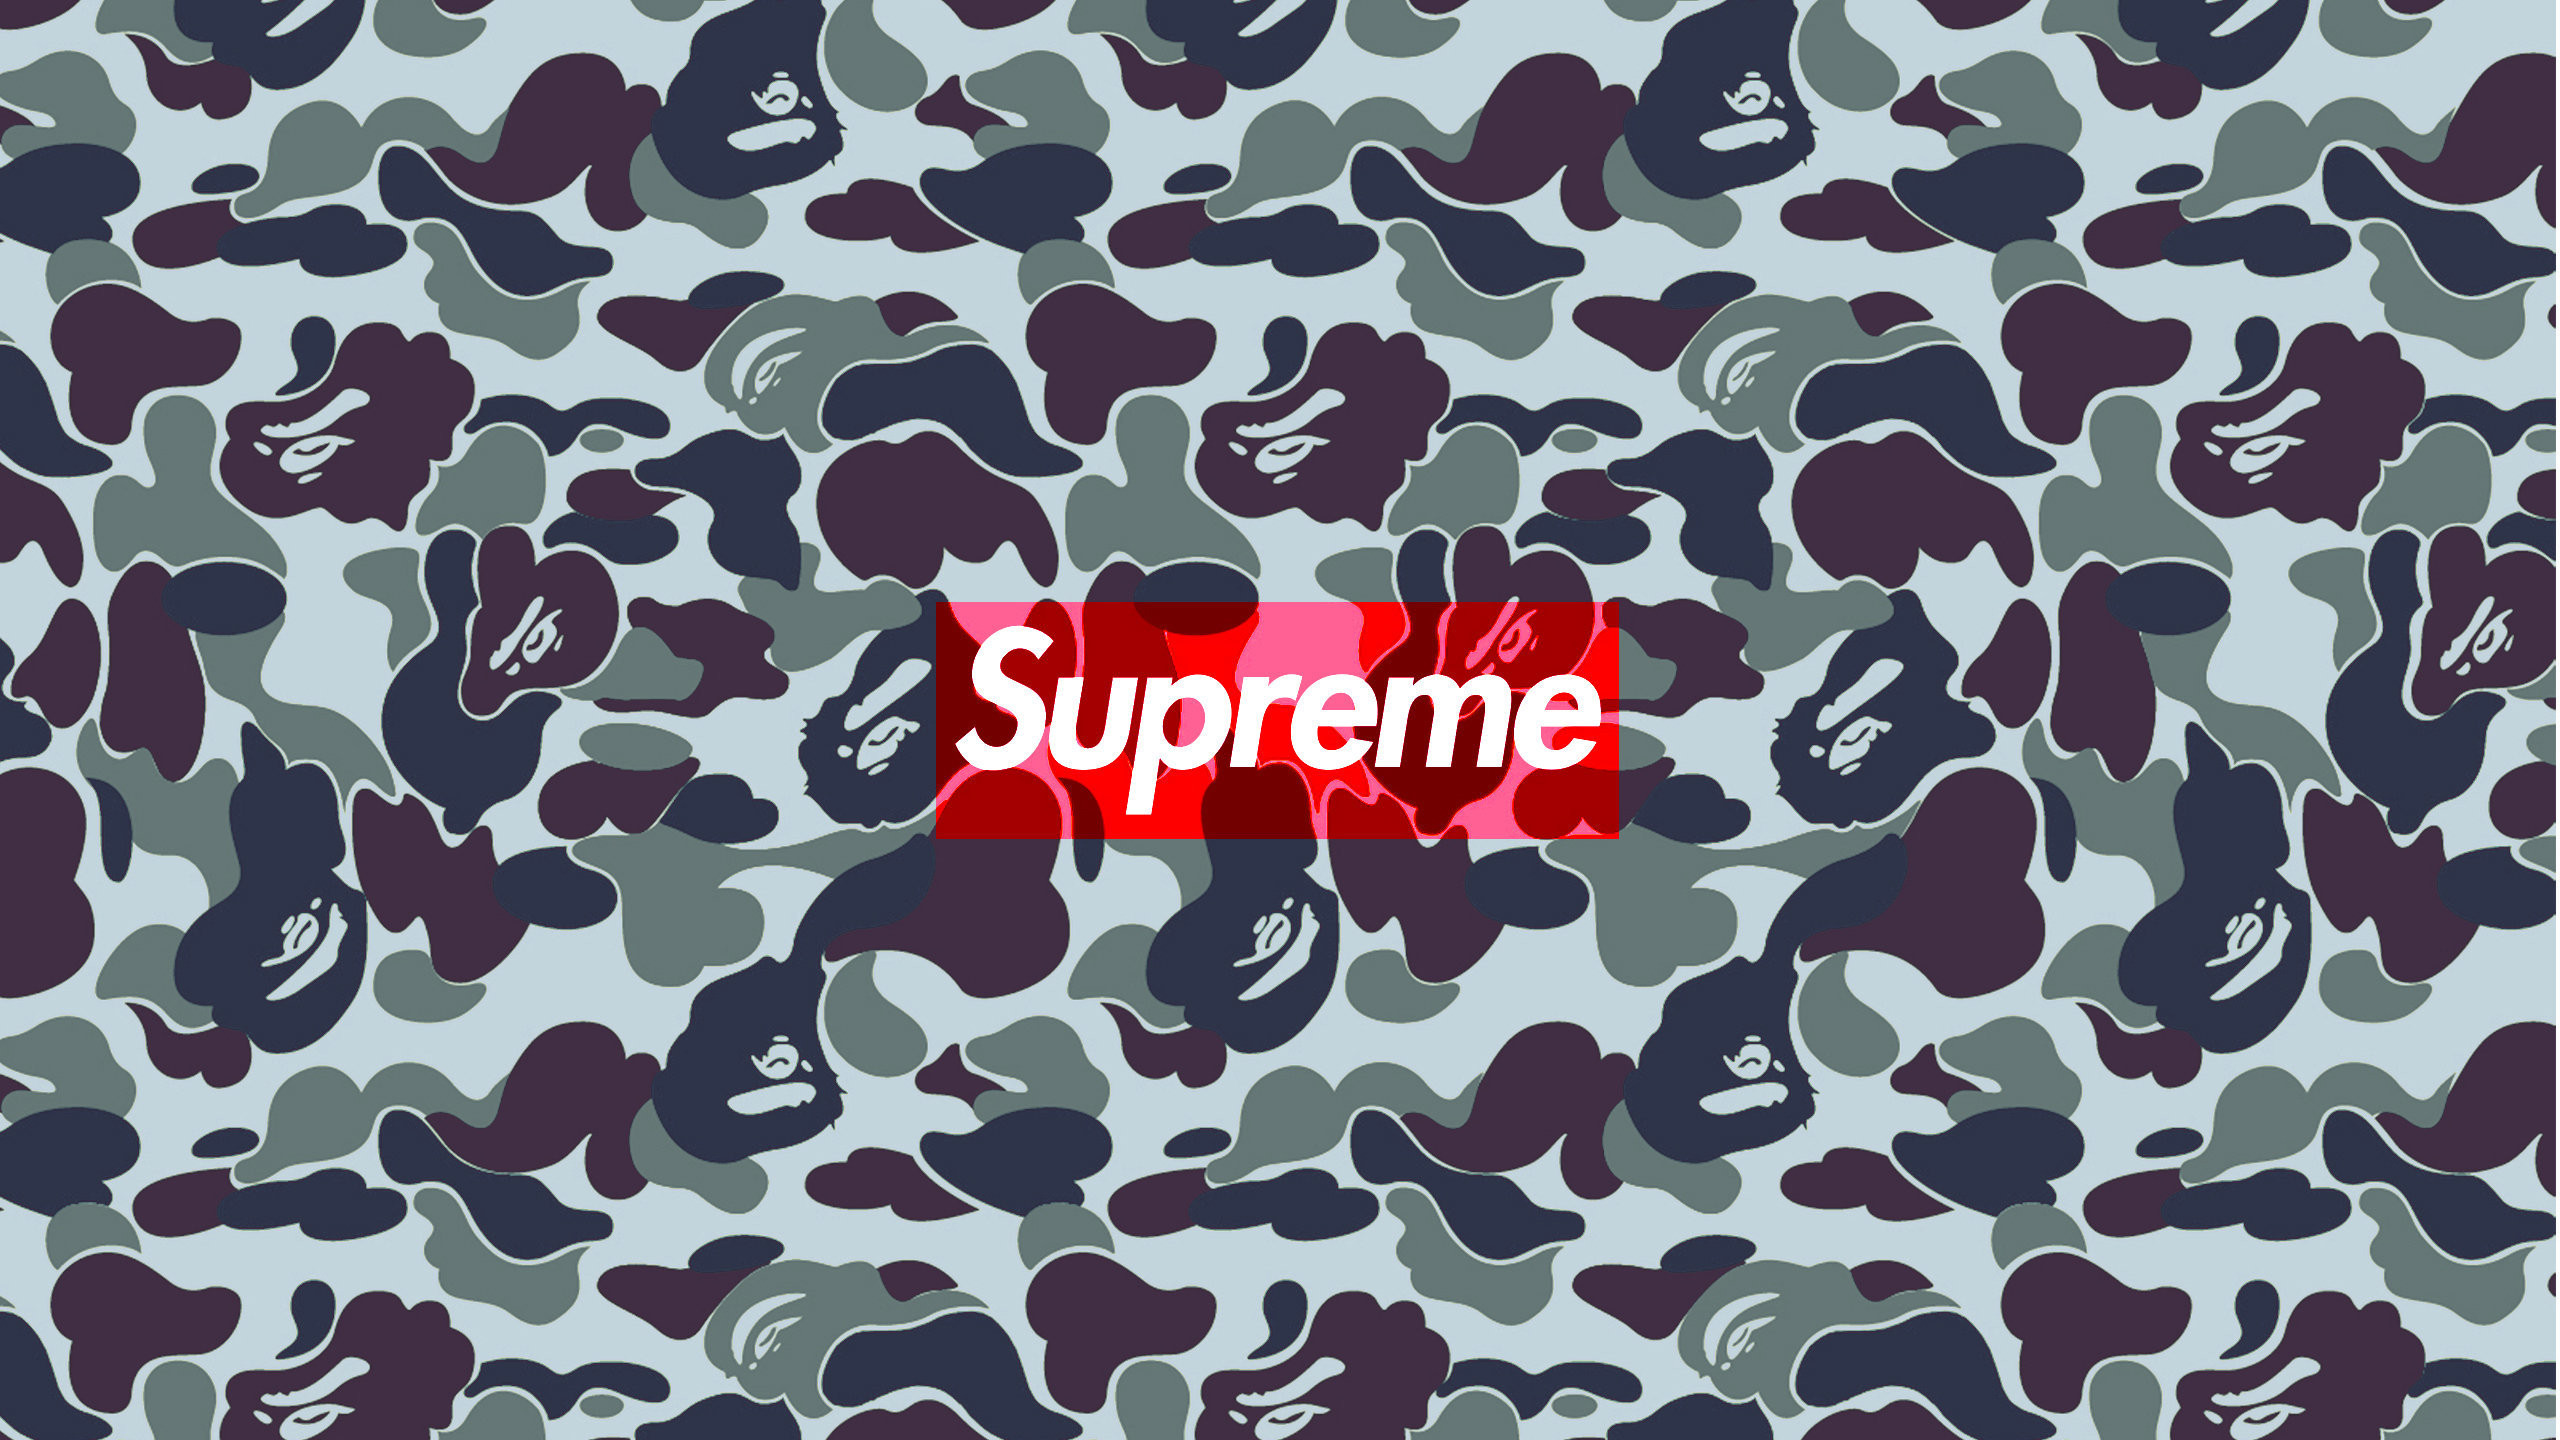 2560x1440 Download The Supreme Bape Urban Camo Wallpaper Below For Your Mobile Device Android Phones